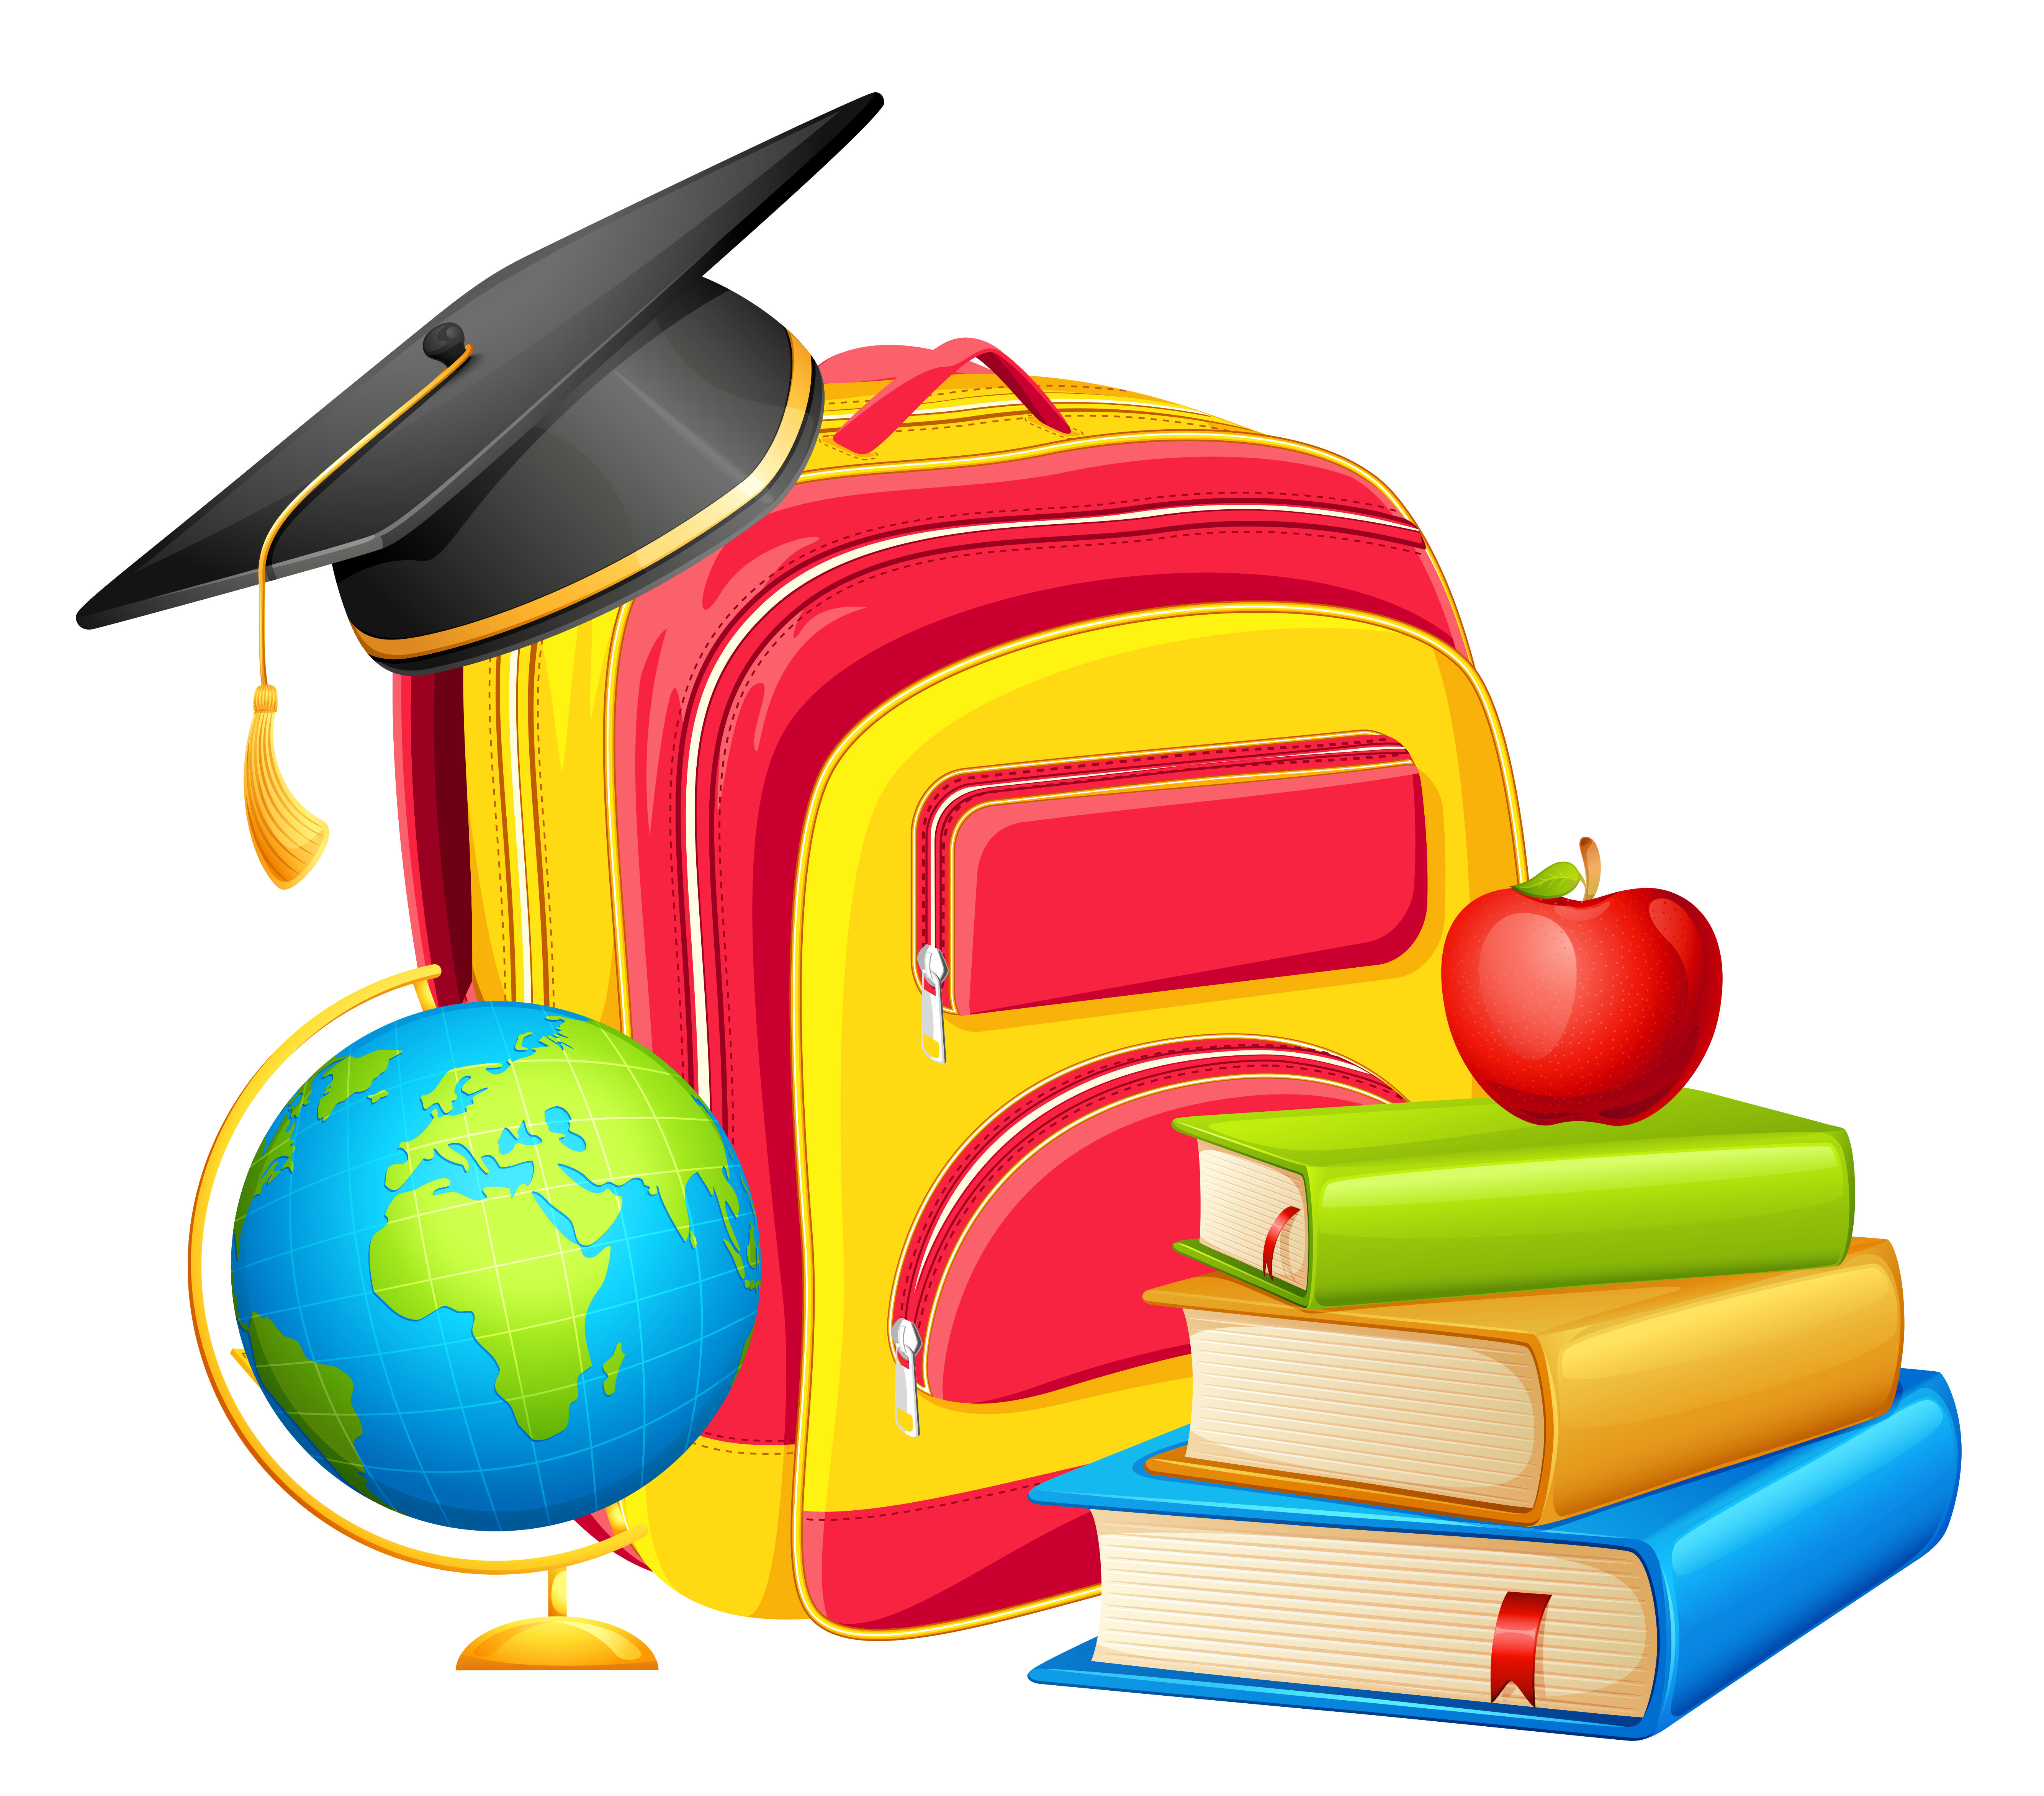 5337x4690 Free School Clipart Downloads Collection